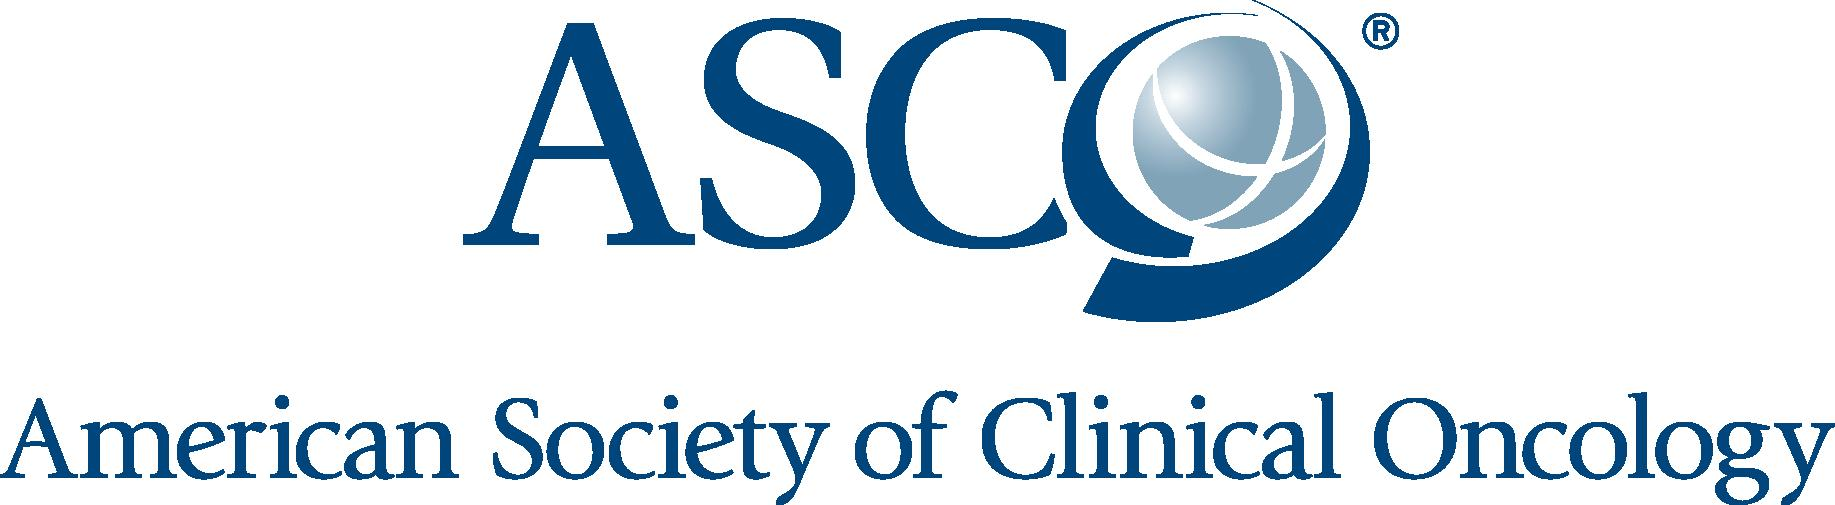 american cancer society functions of management National cancer advisory board  ms kerrie b wilson, american cancer society  extramural functions were separated from.